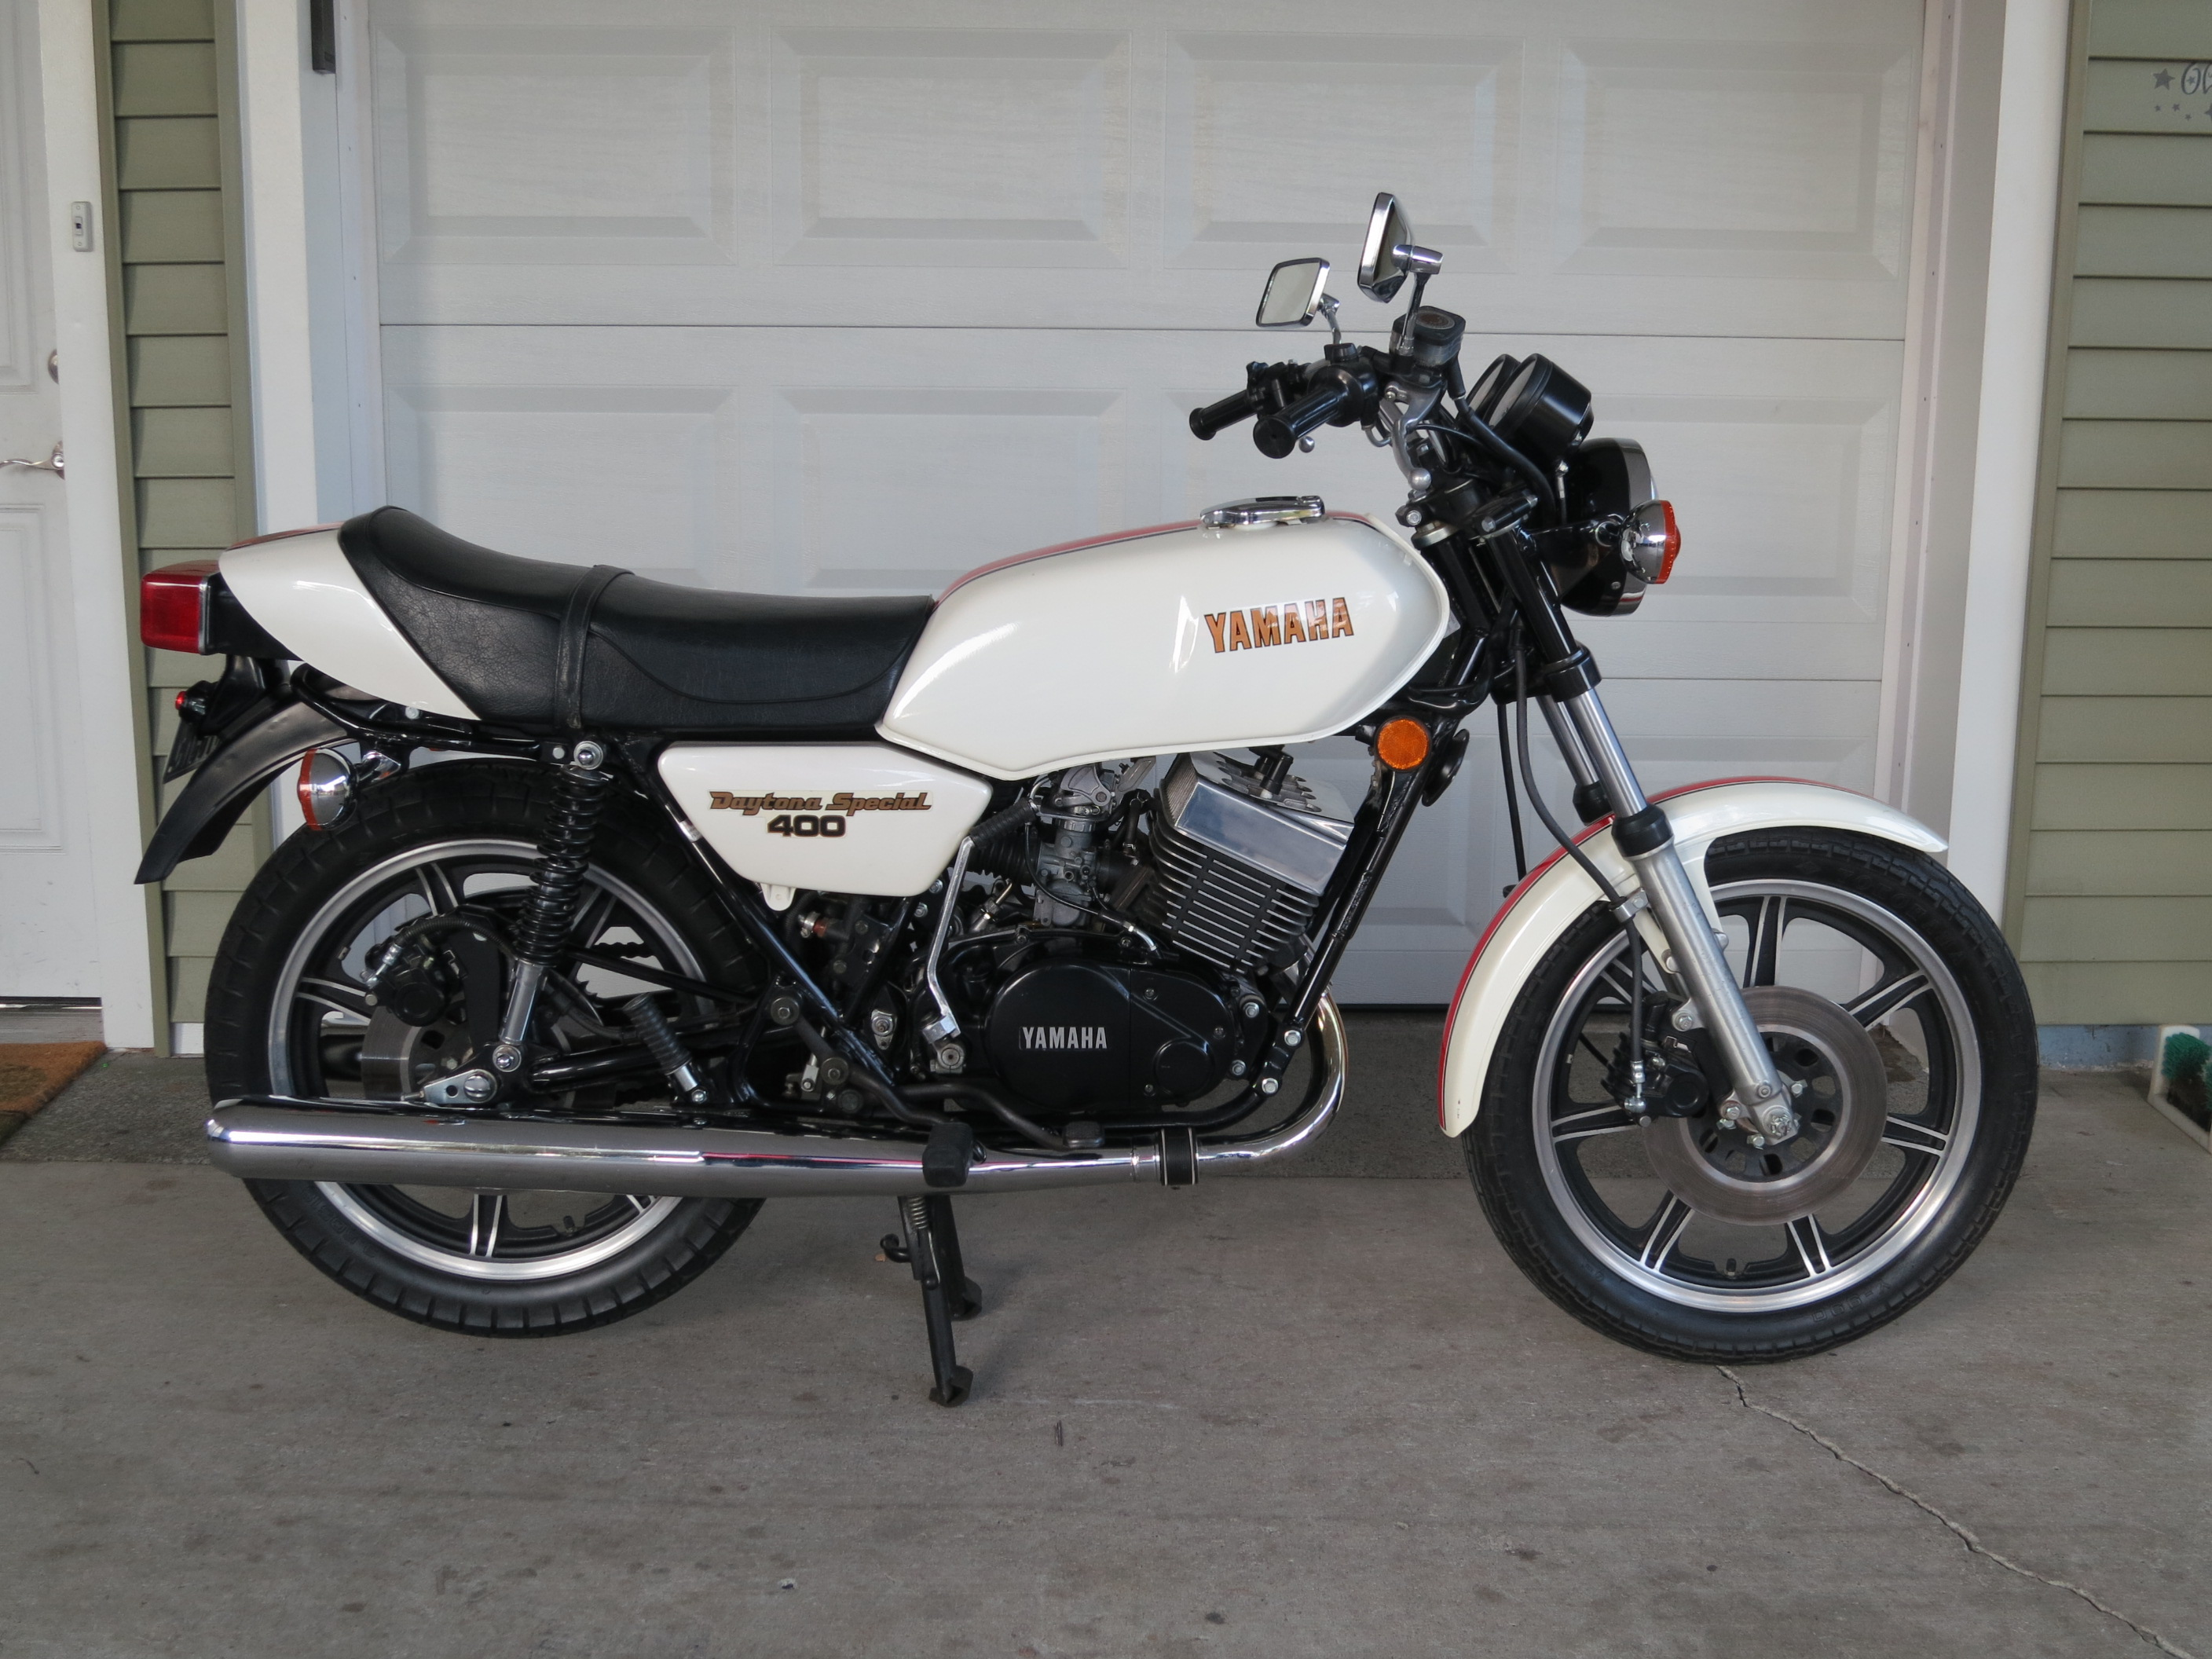 1979 yamaha rd400 daytona special available in puyallup for Yamaha motorcycle website